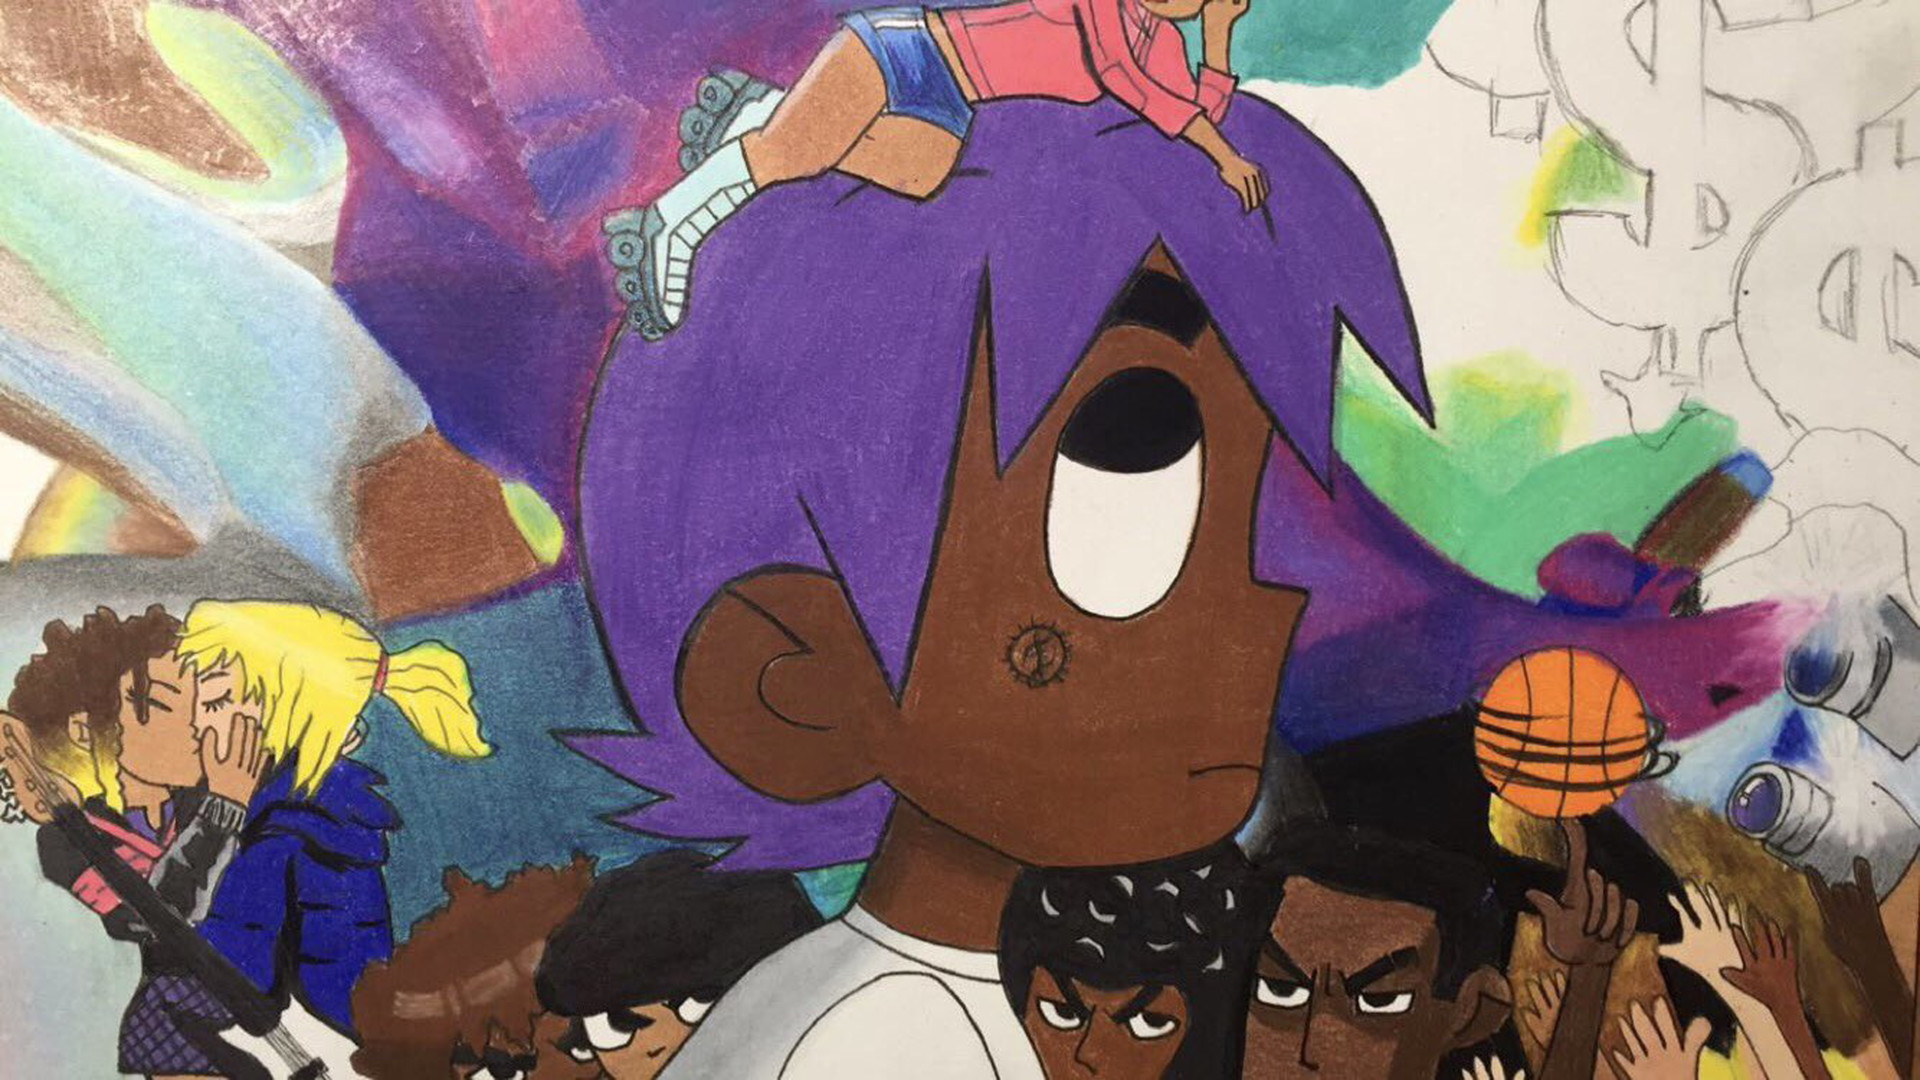 Lil Uzi Vert Wallpapers 76 Background Pictures #lil uzi vert #lil uzi #luv is rage #the perfect luv tape #lil uzi vert vs. lil uzi vert wallpapers 76 background pictures